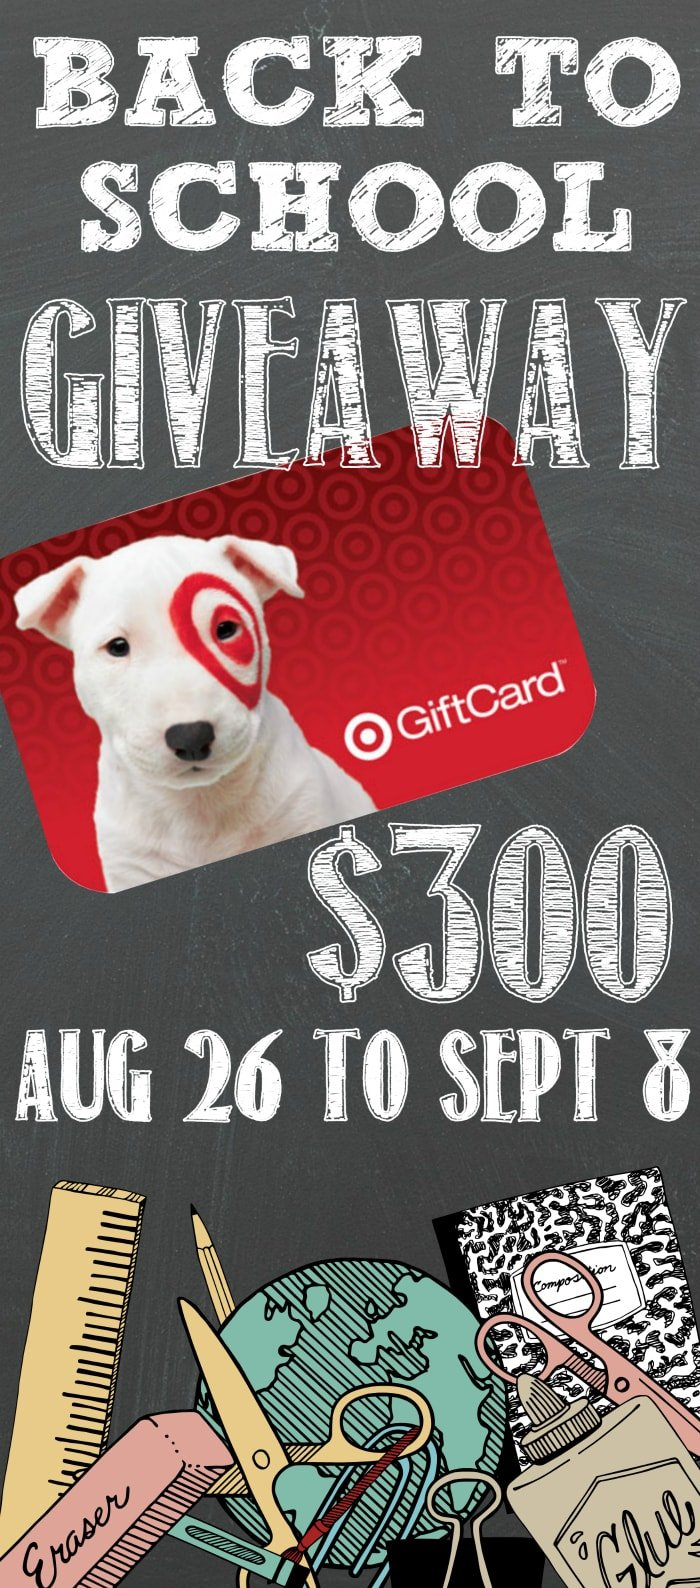 do you want to enter my free giftcard giveaway